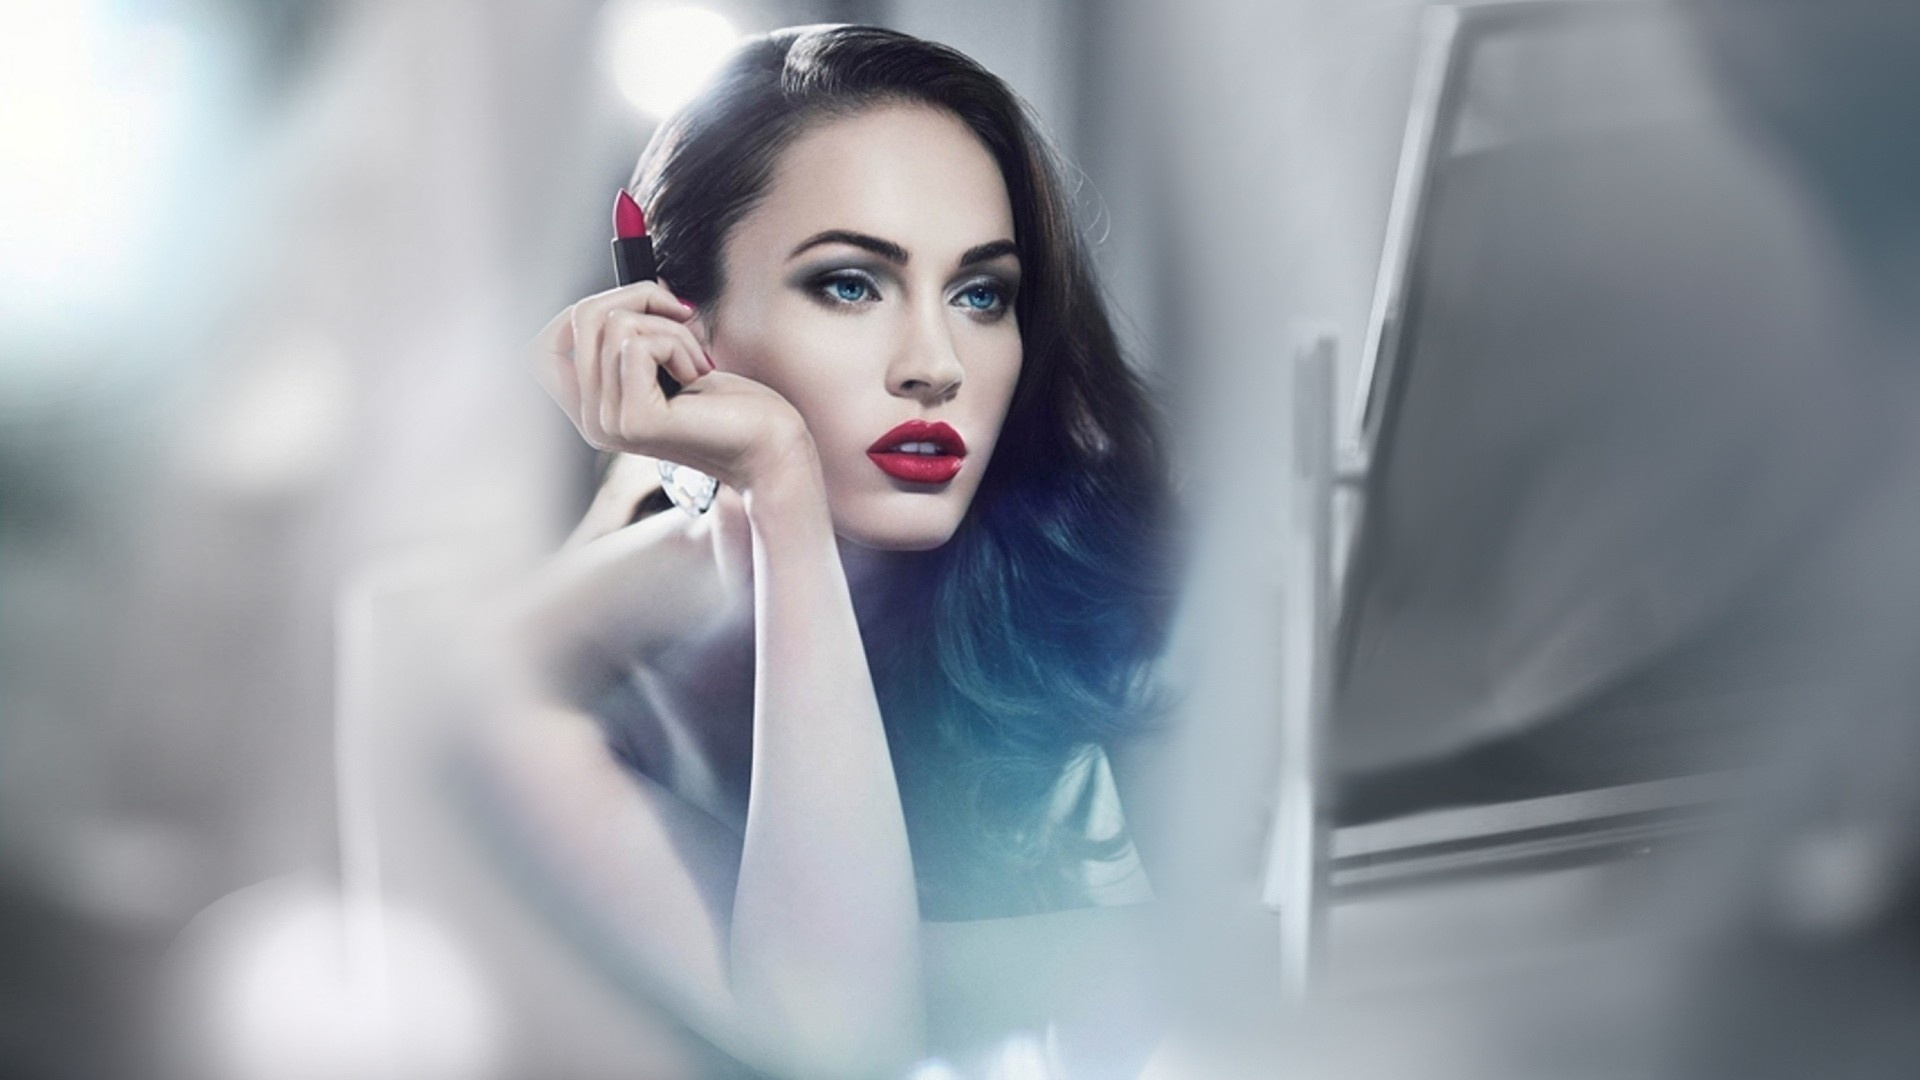 megan fox wallpapers hd A8